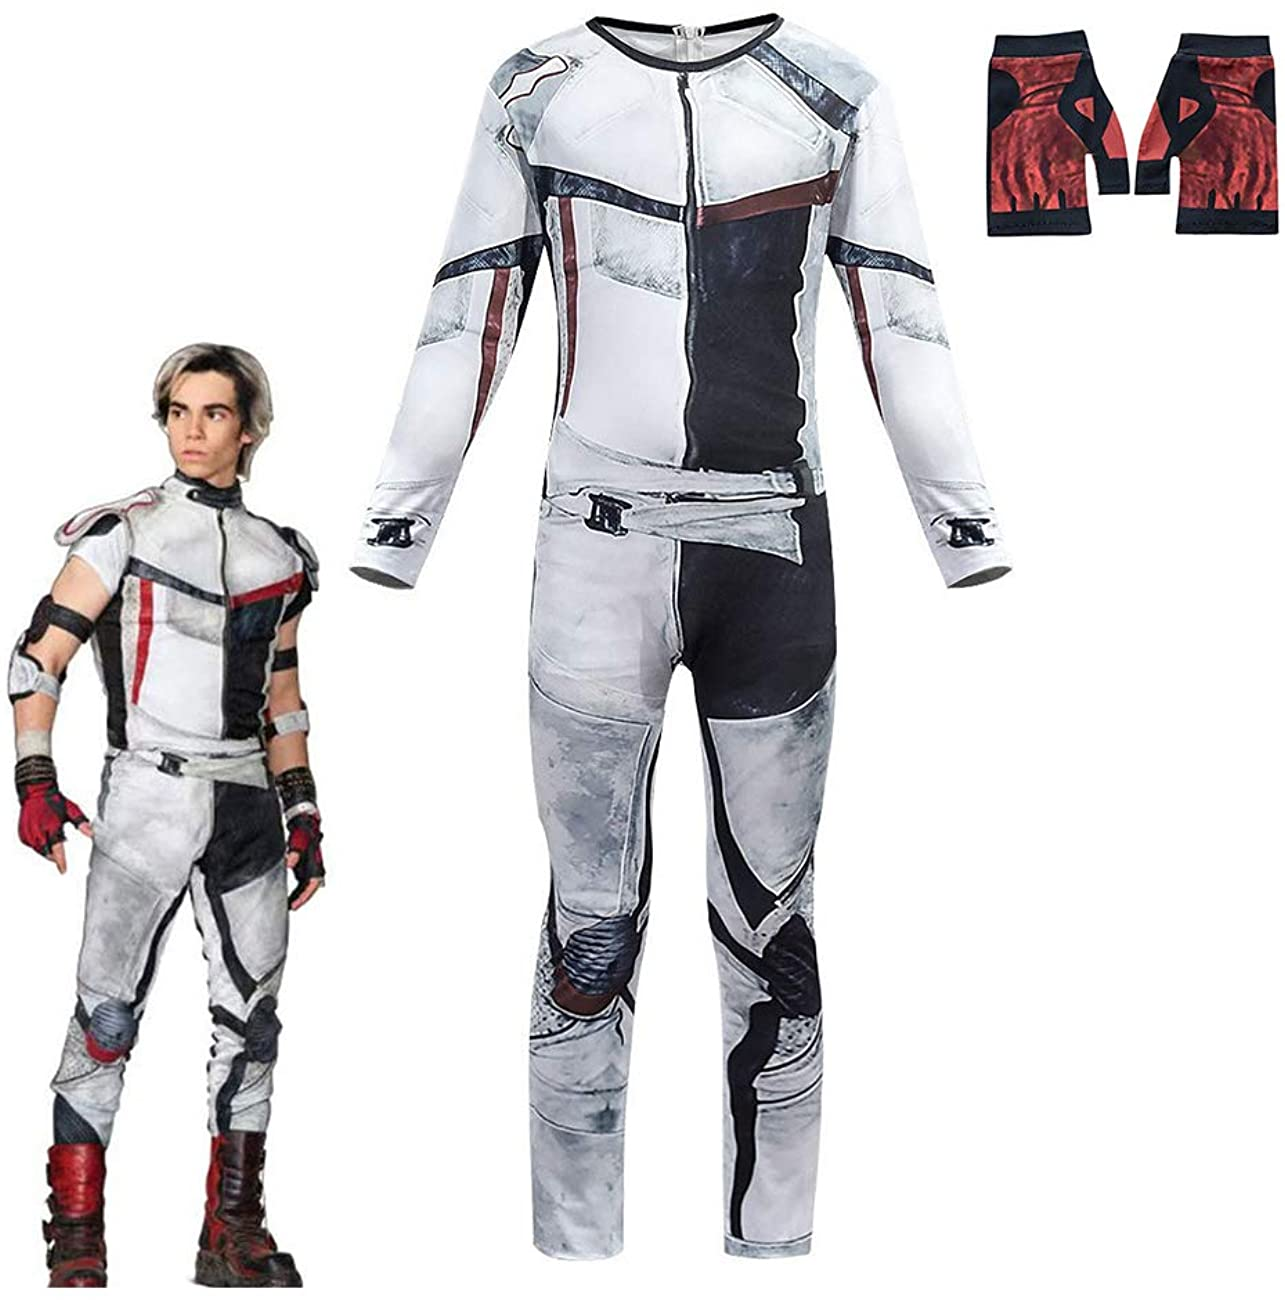 Jay SALENEW very popular Carlos Descendants 3 Costumes for Boys Ch Halloween Jumpsuit Limited price sale